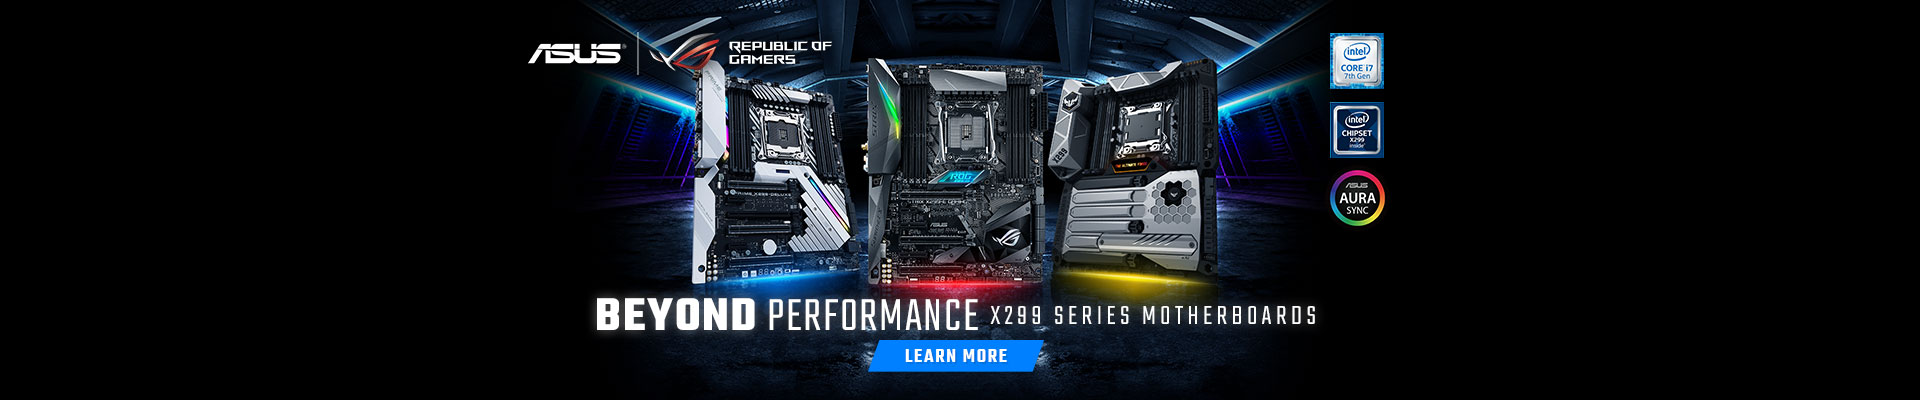 ASUS ROG X299 Motherboards